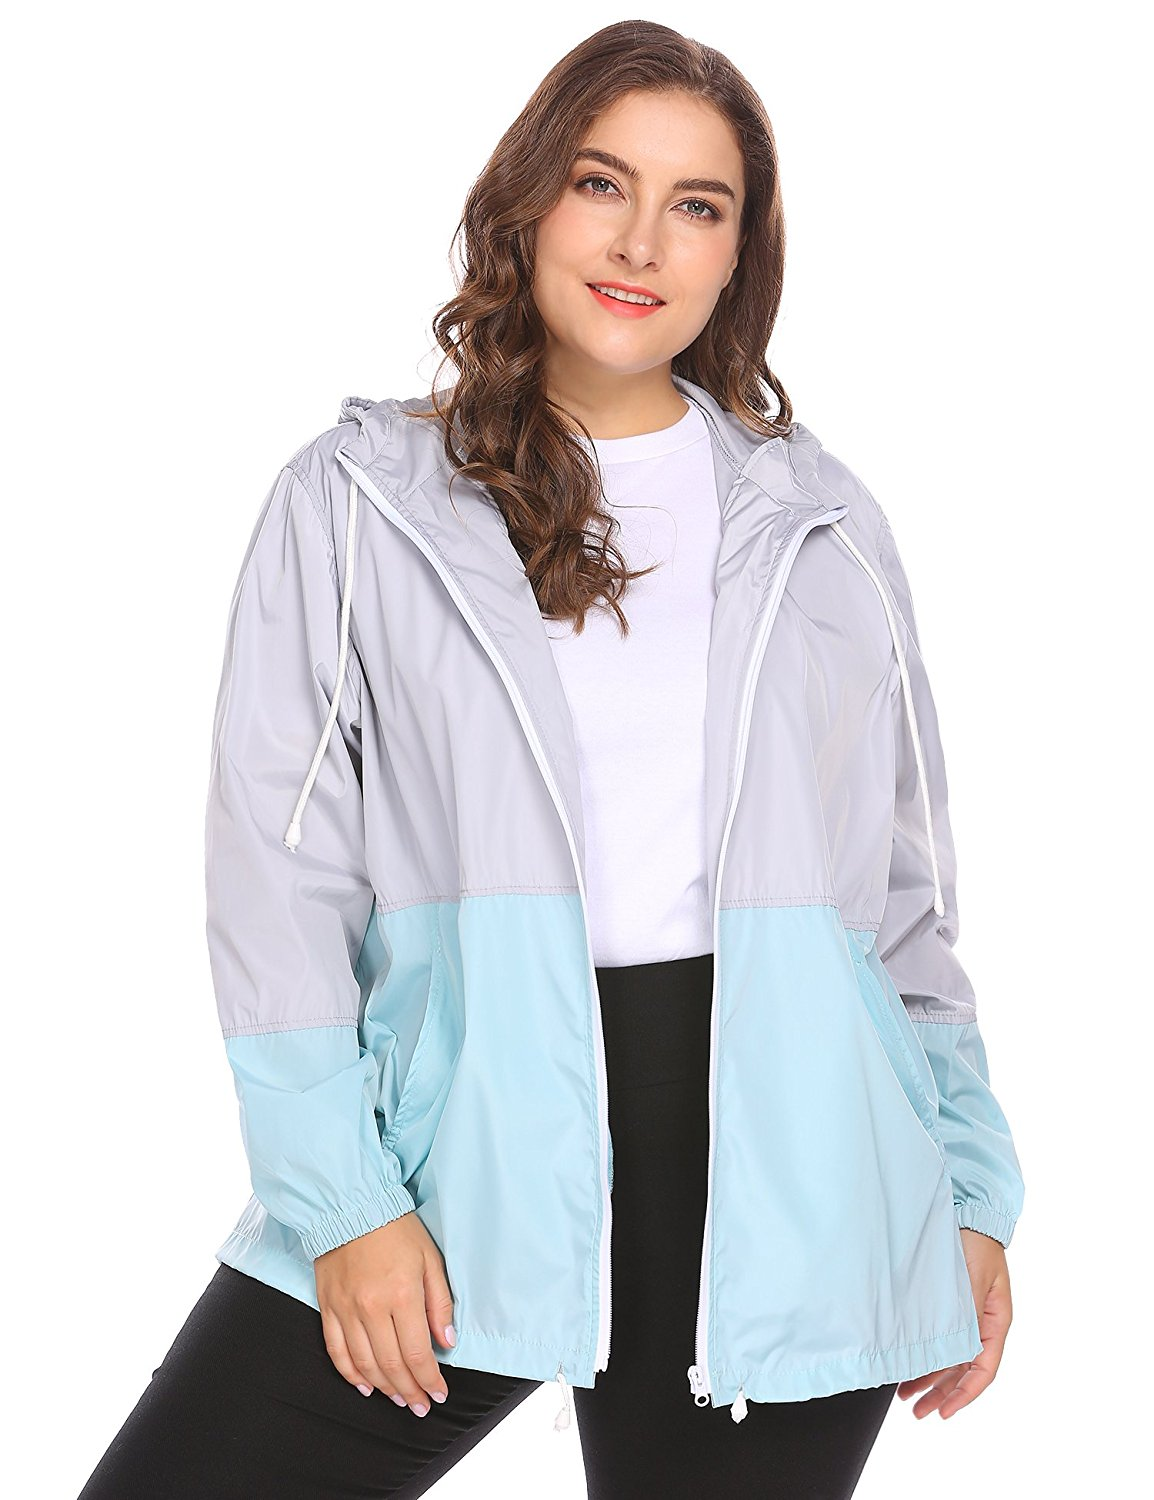 a29a89e7b90 Get Quotations · IN VOLAND Women s Plus Size Rain Jacket Lightweight Hooded  Waterproof Active Outdoor Rain Coat